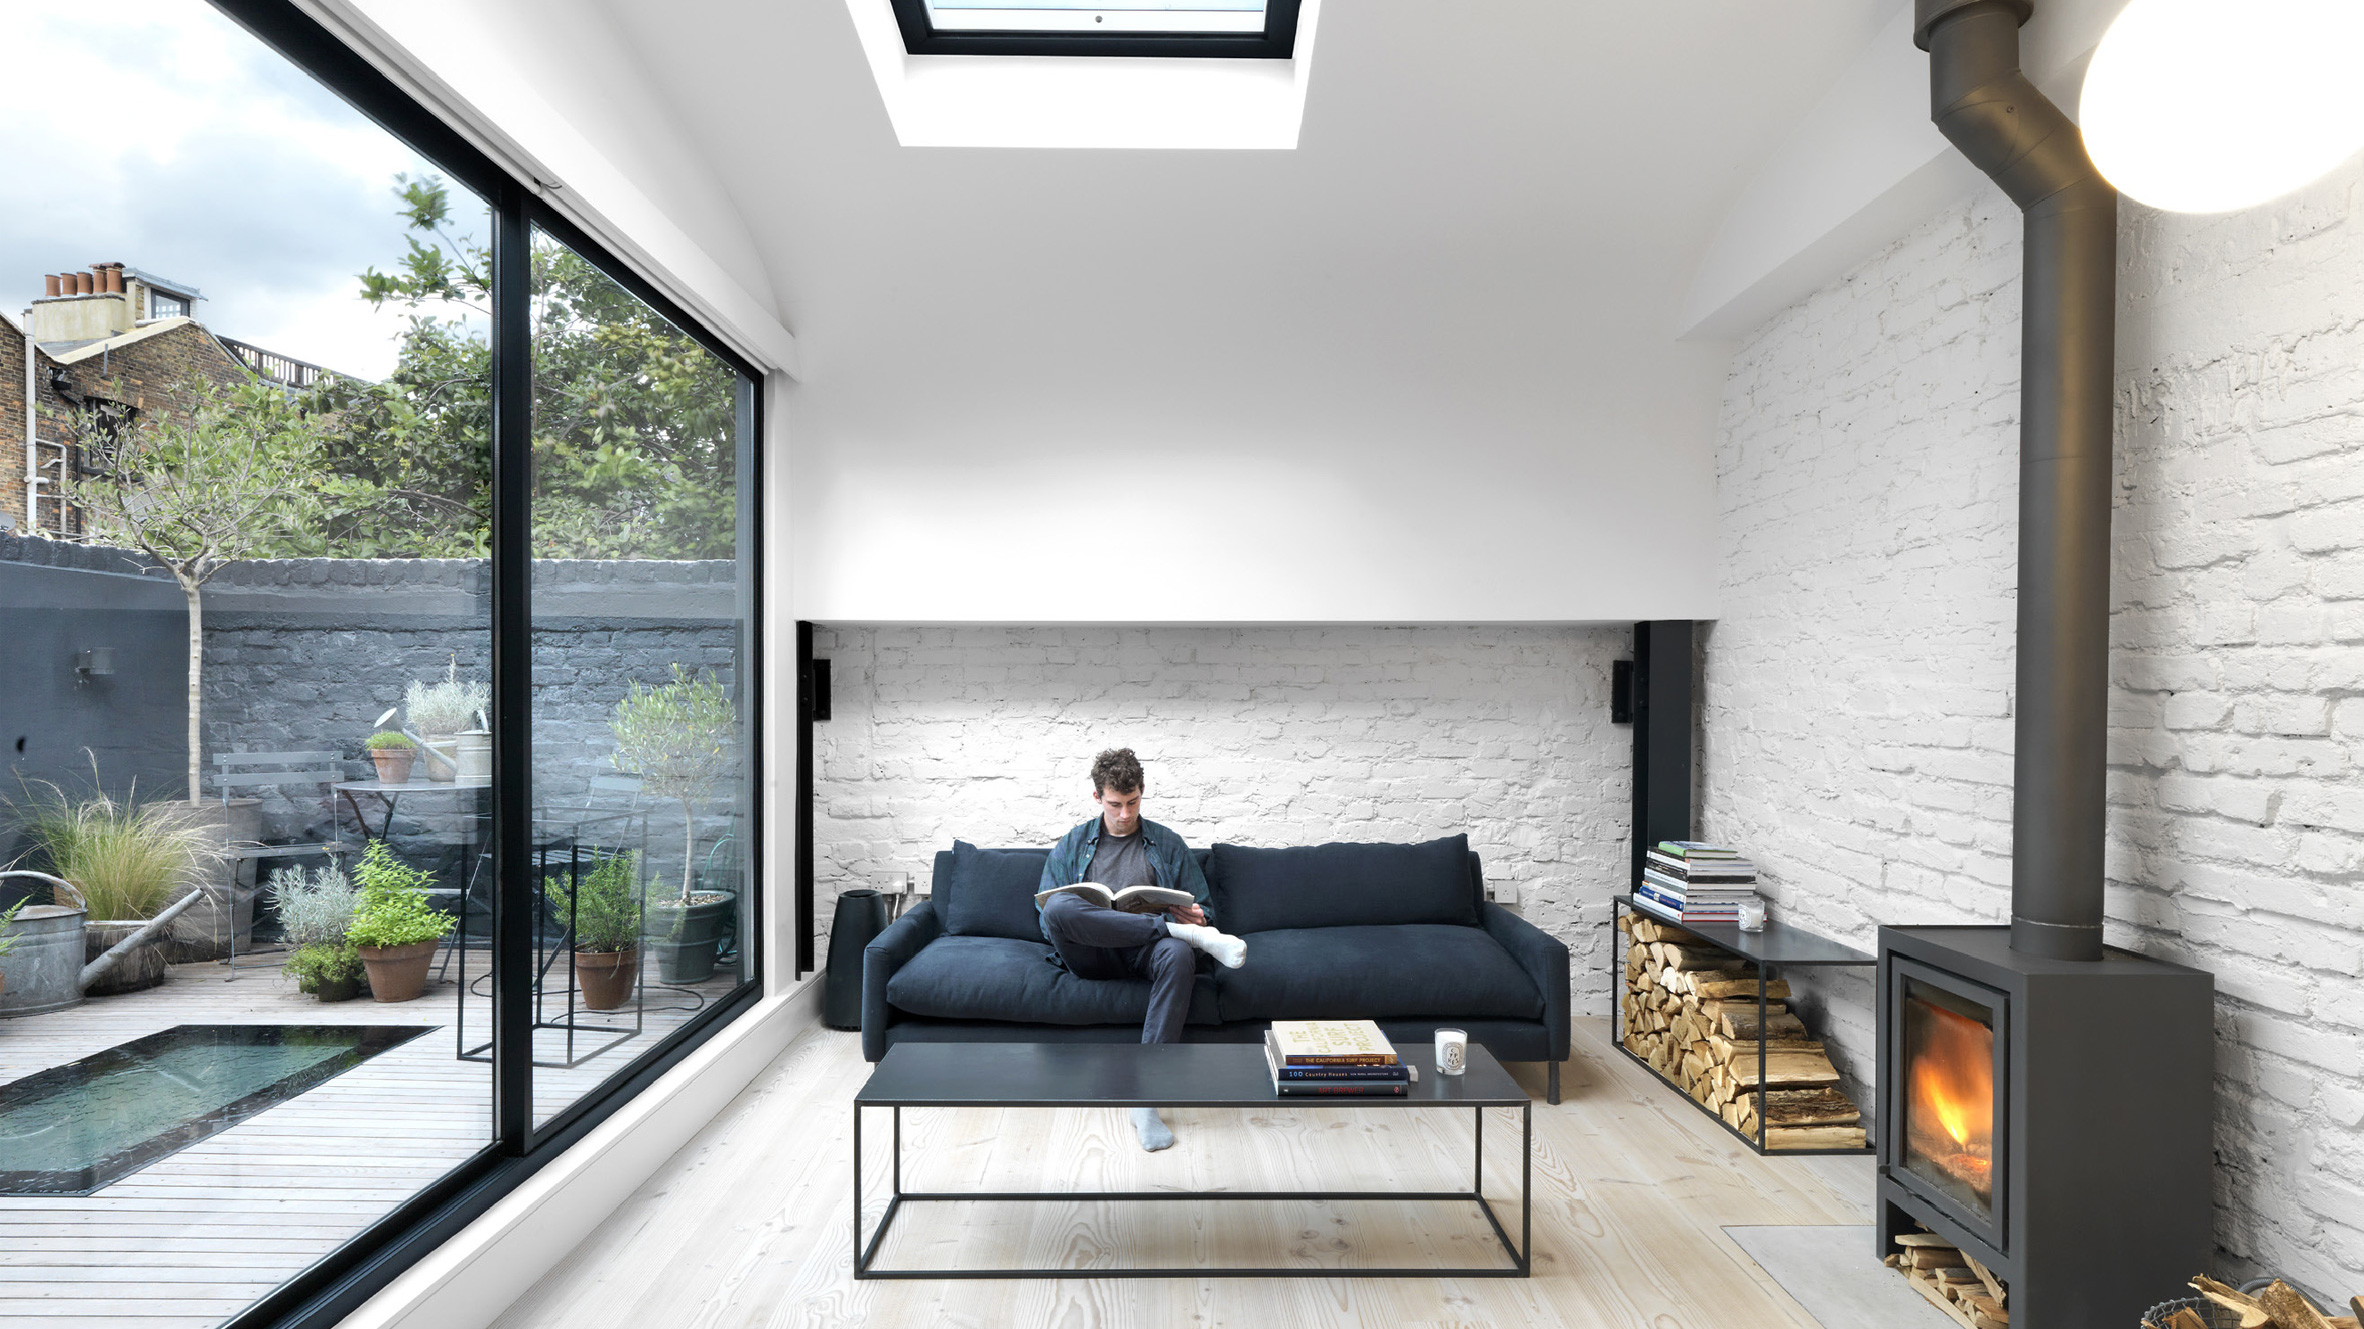 Threefold Architects Updates London Mews House With Monochrome Interiors  And Rustic Details